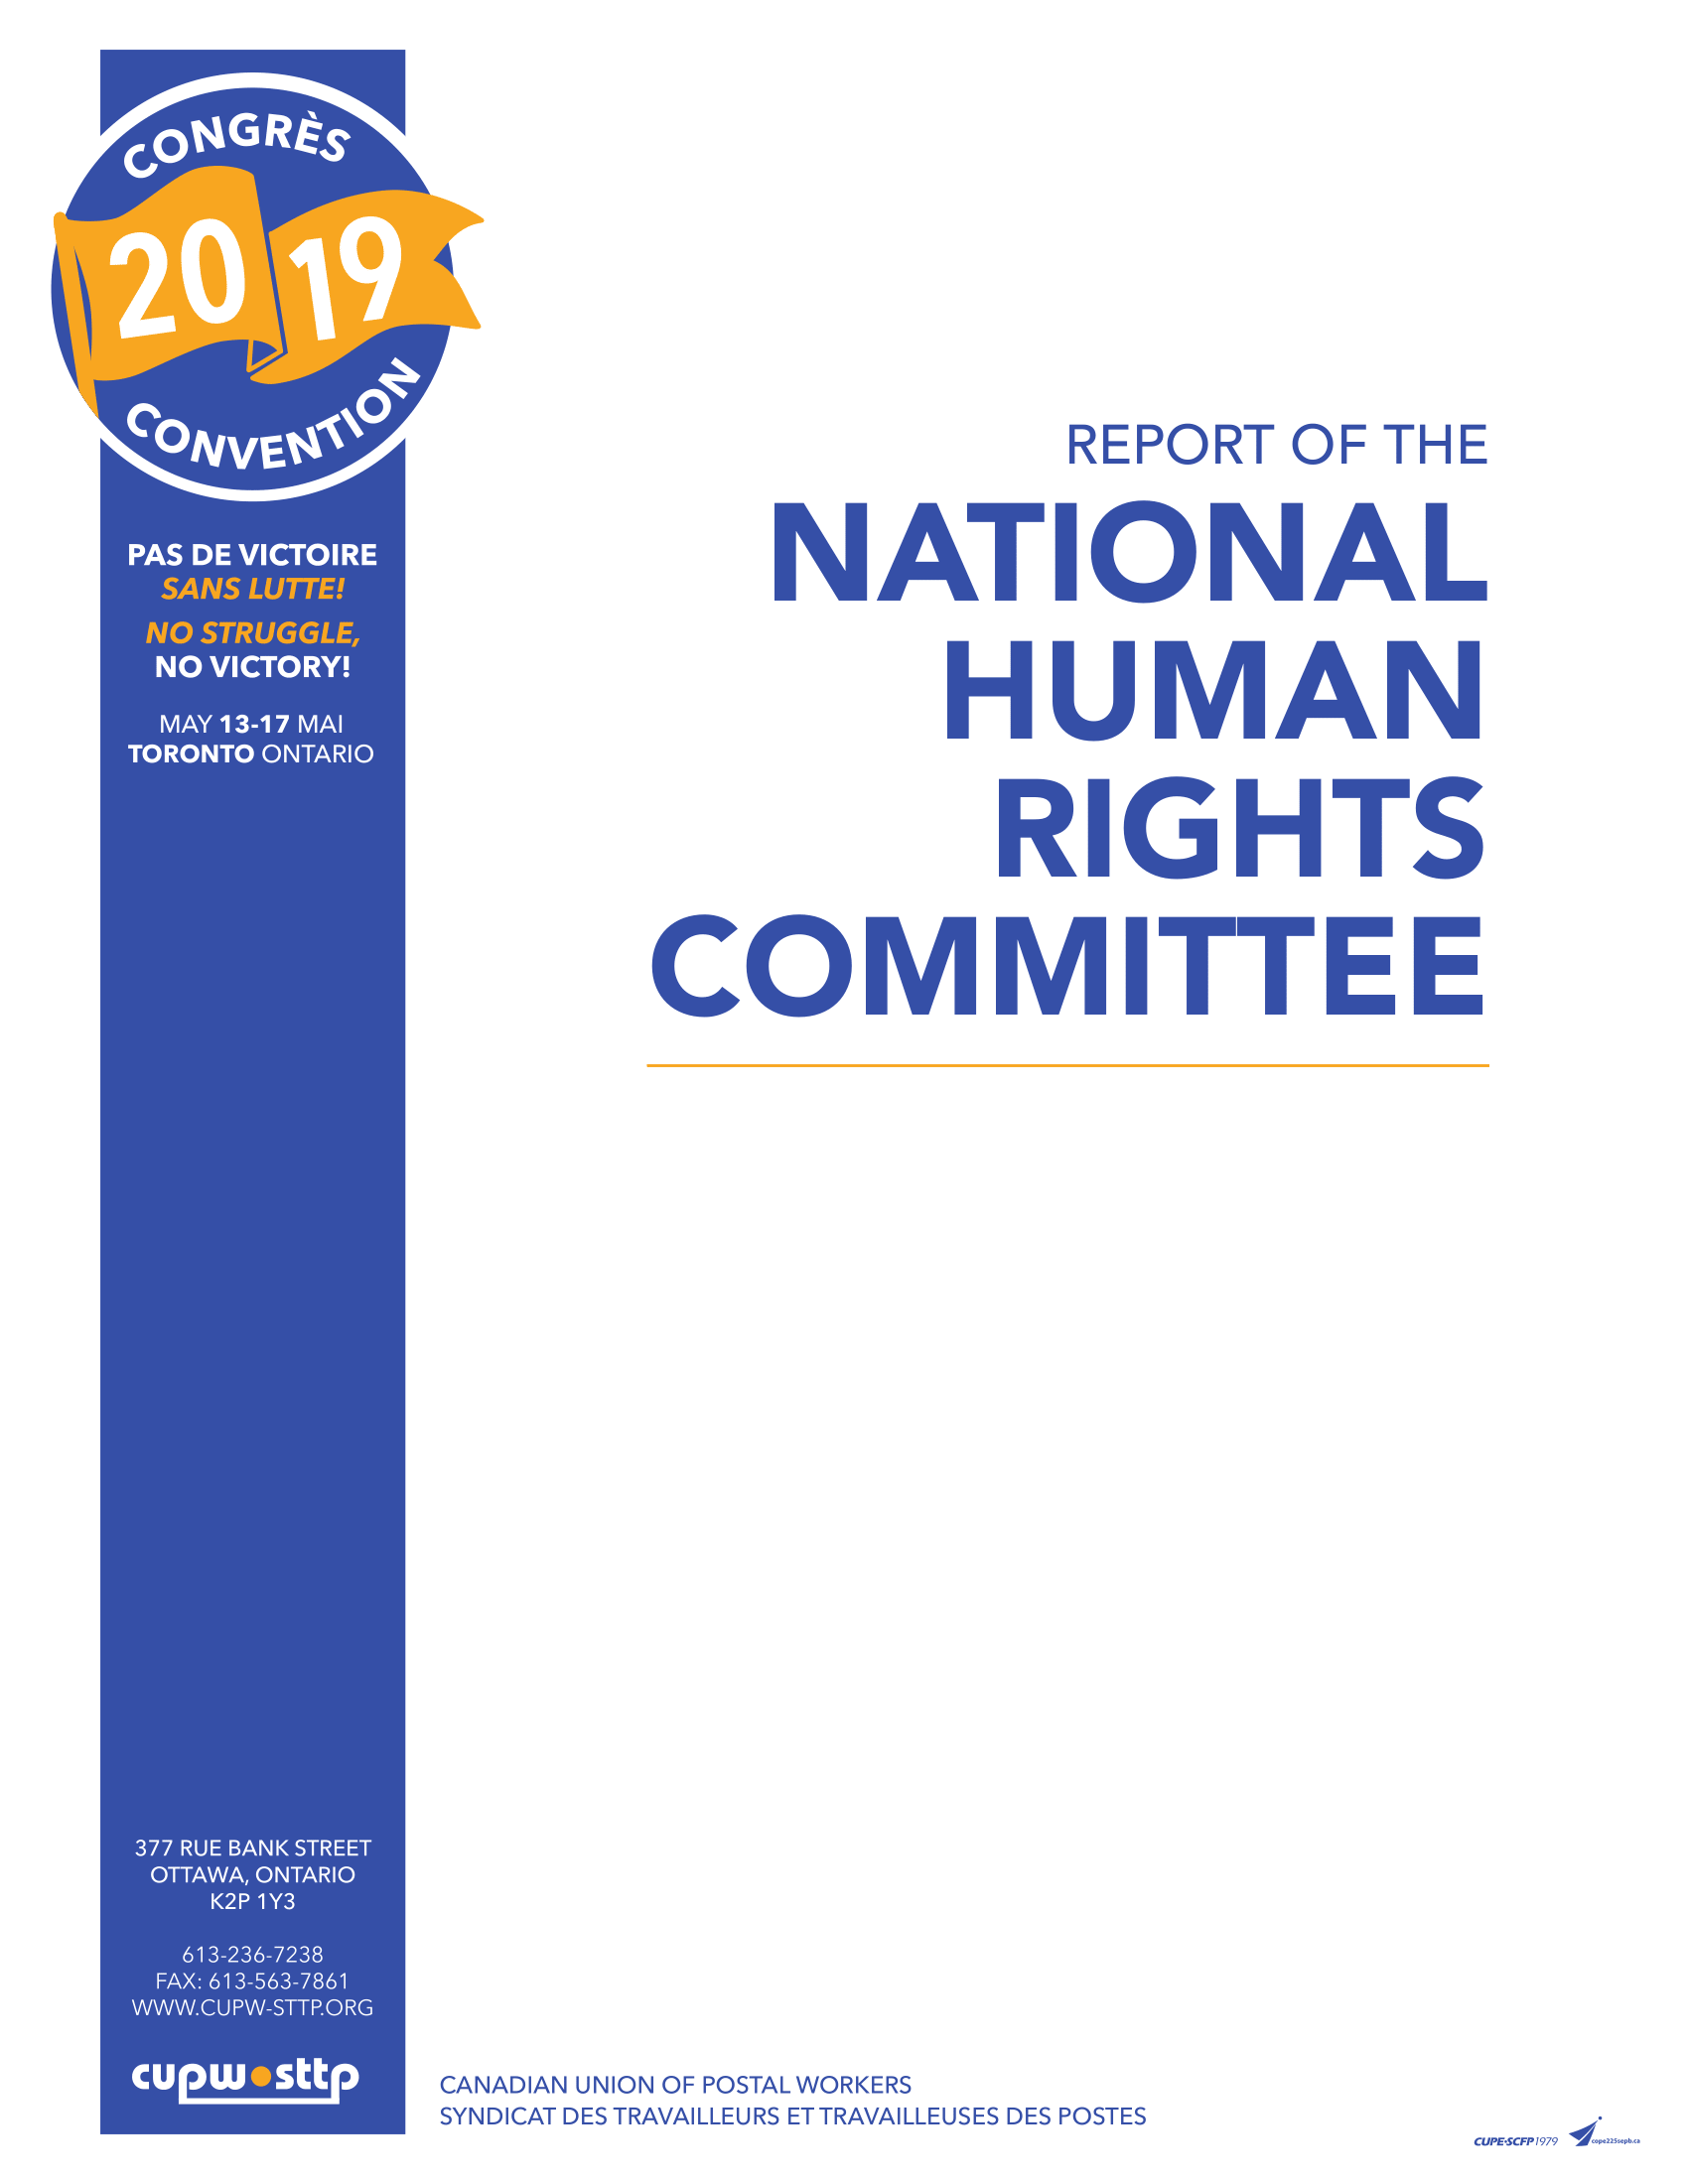 Report of the National Human Rights Committee (2019)